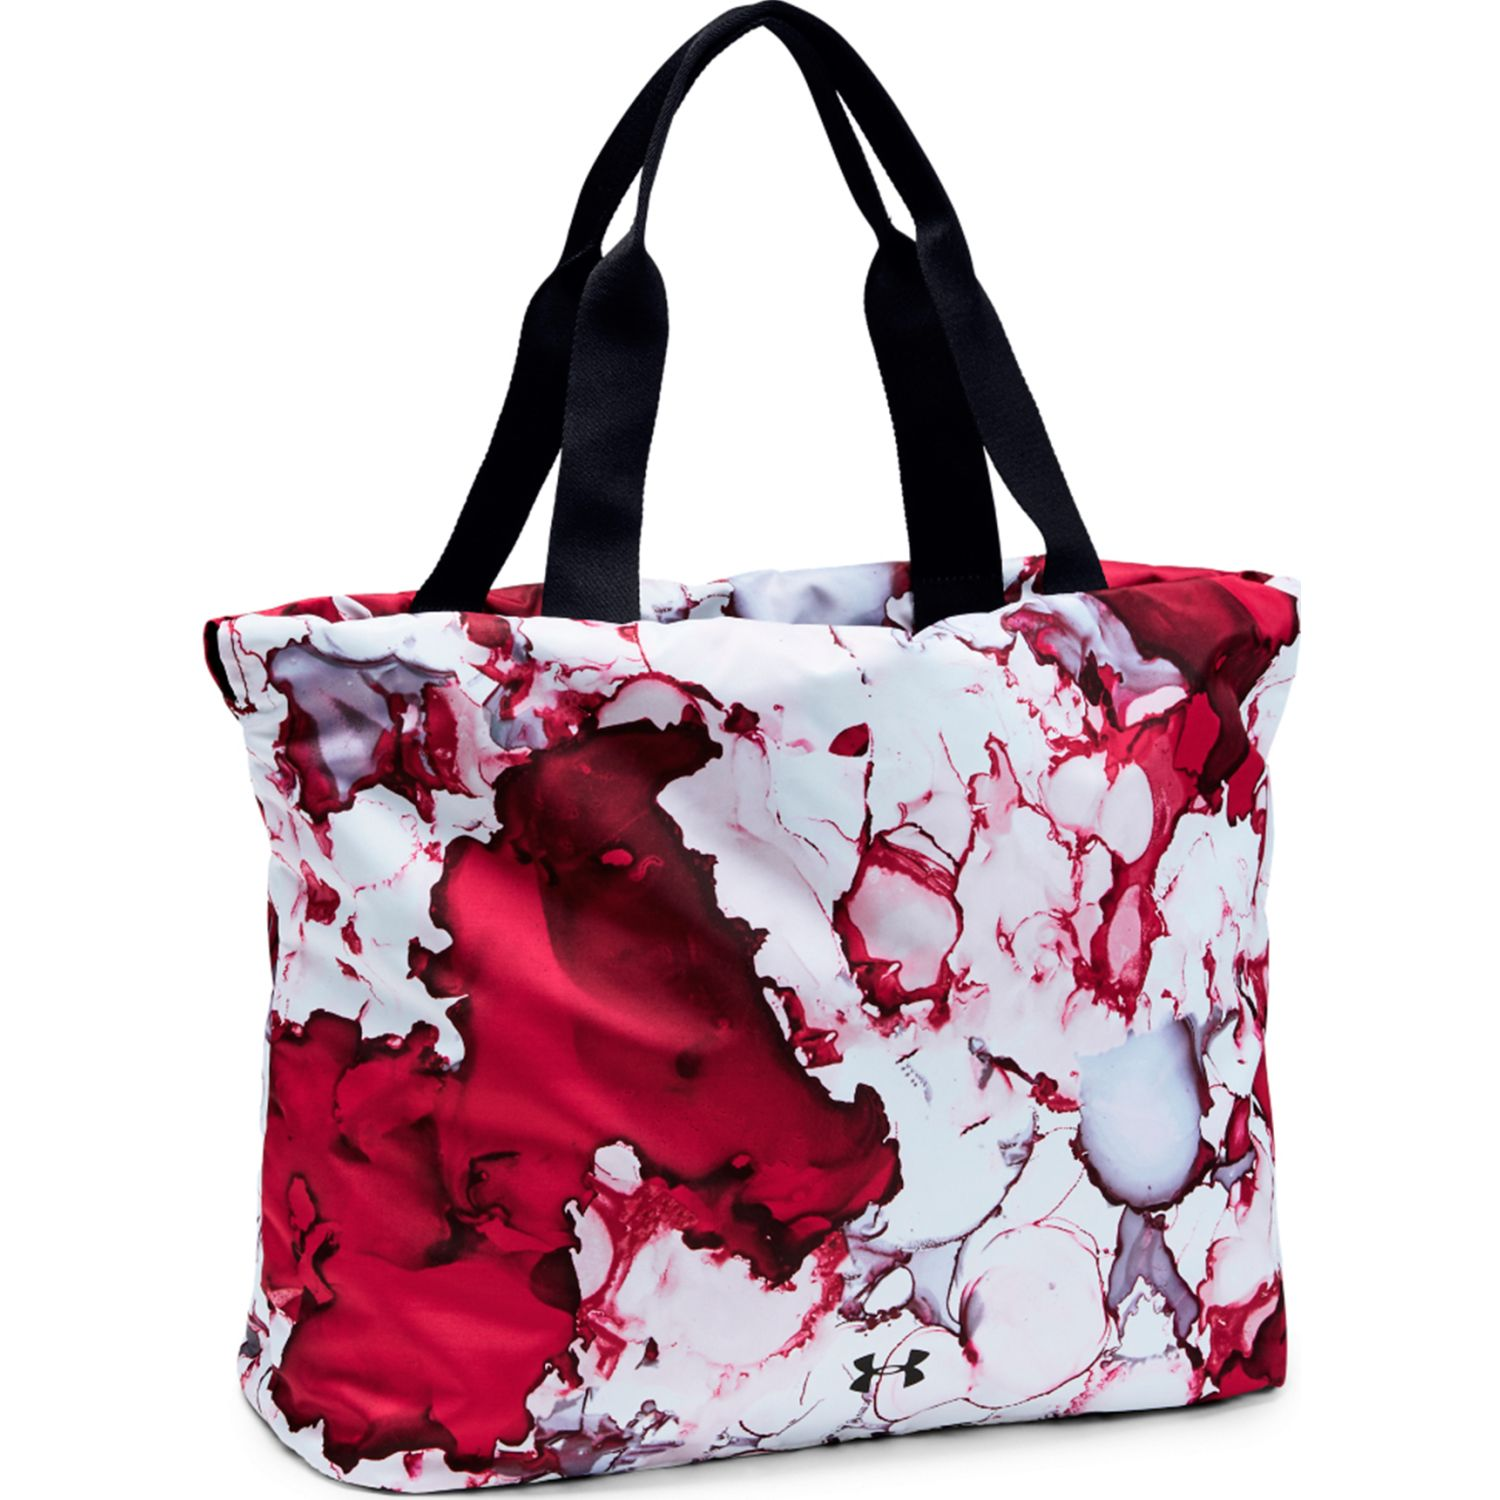 Under Armour ua cinch printed tote-pnk Fucsia / blanco Bolsos de gimnasio